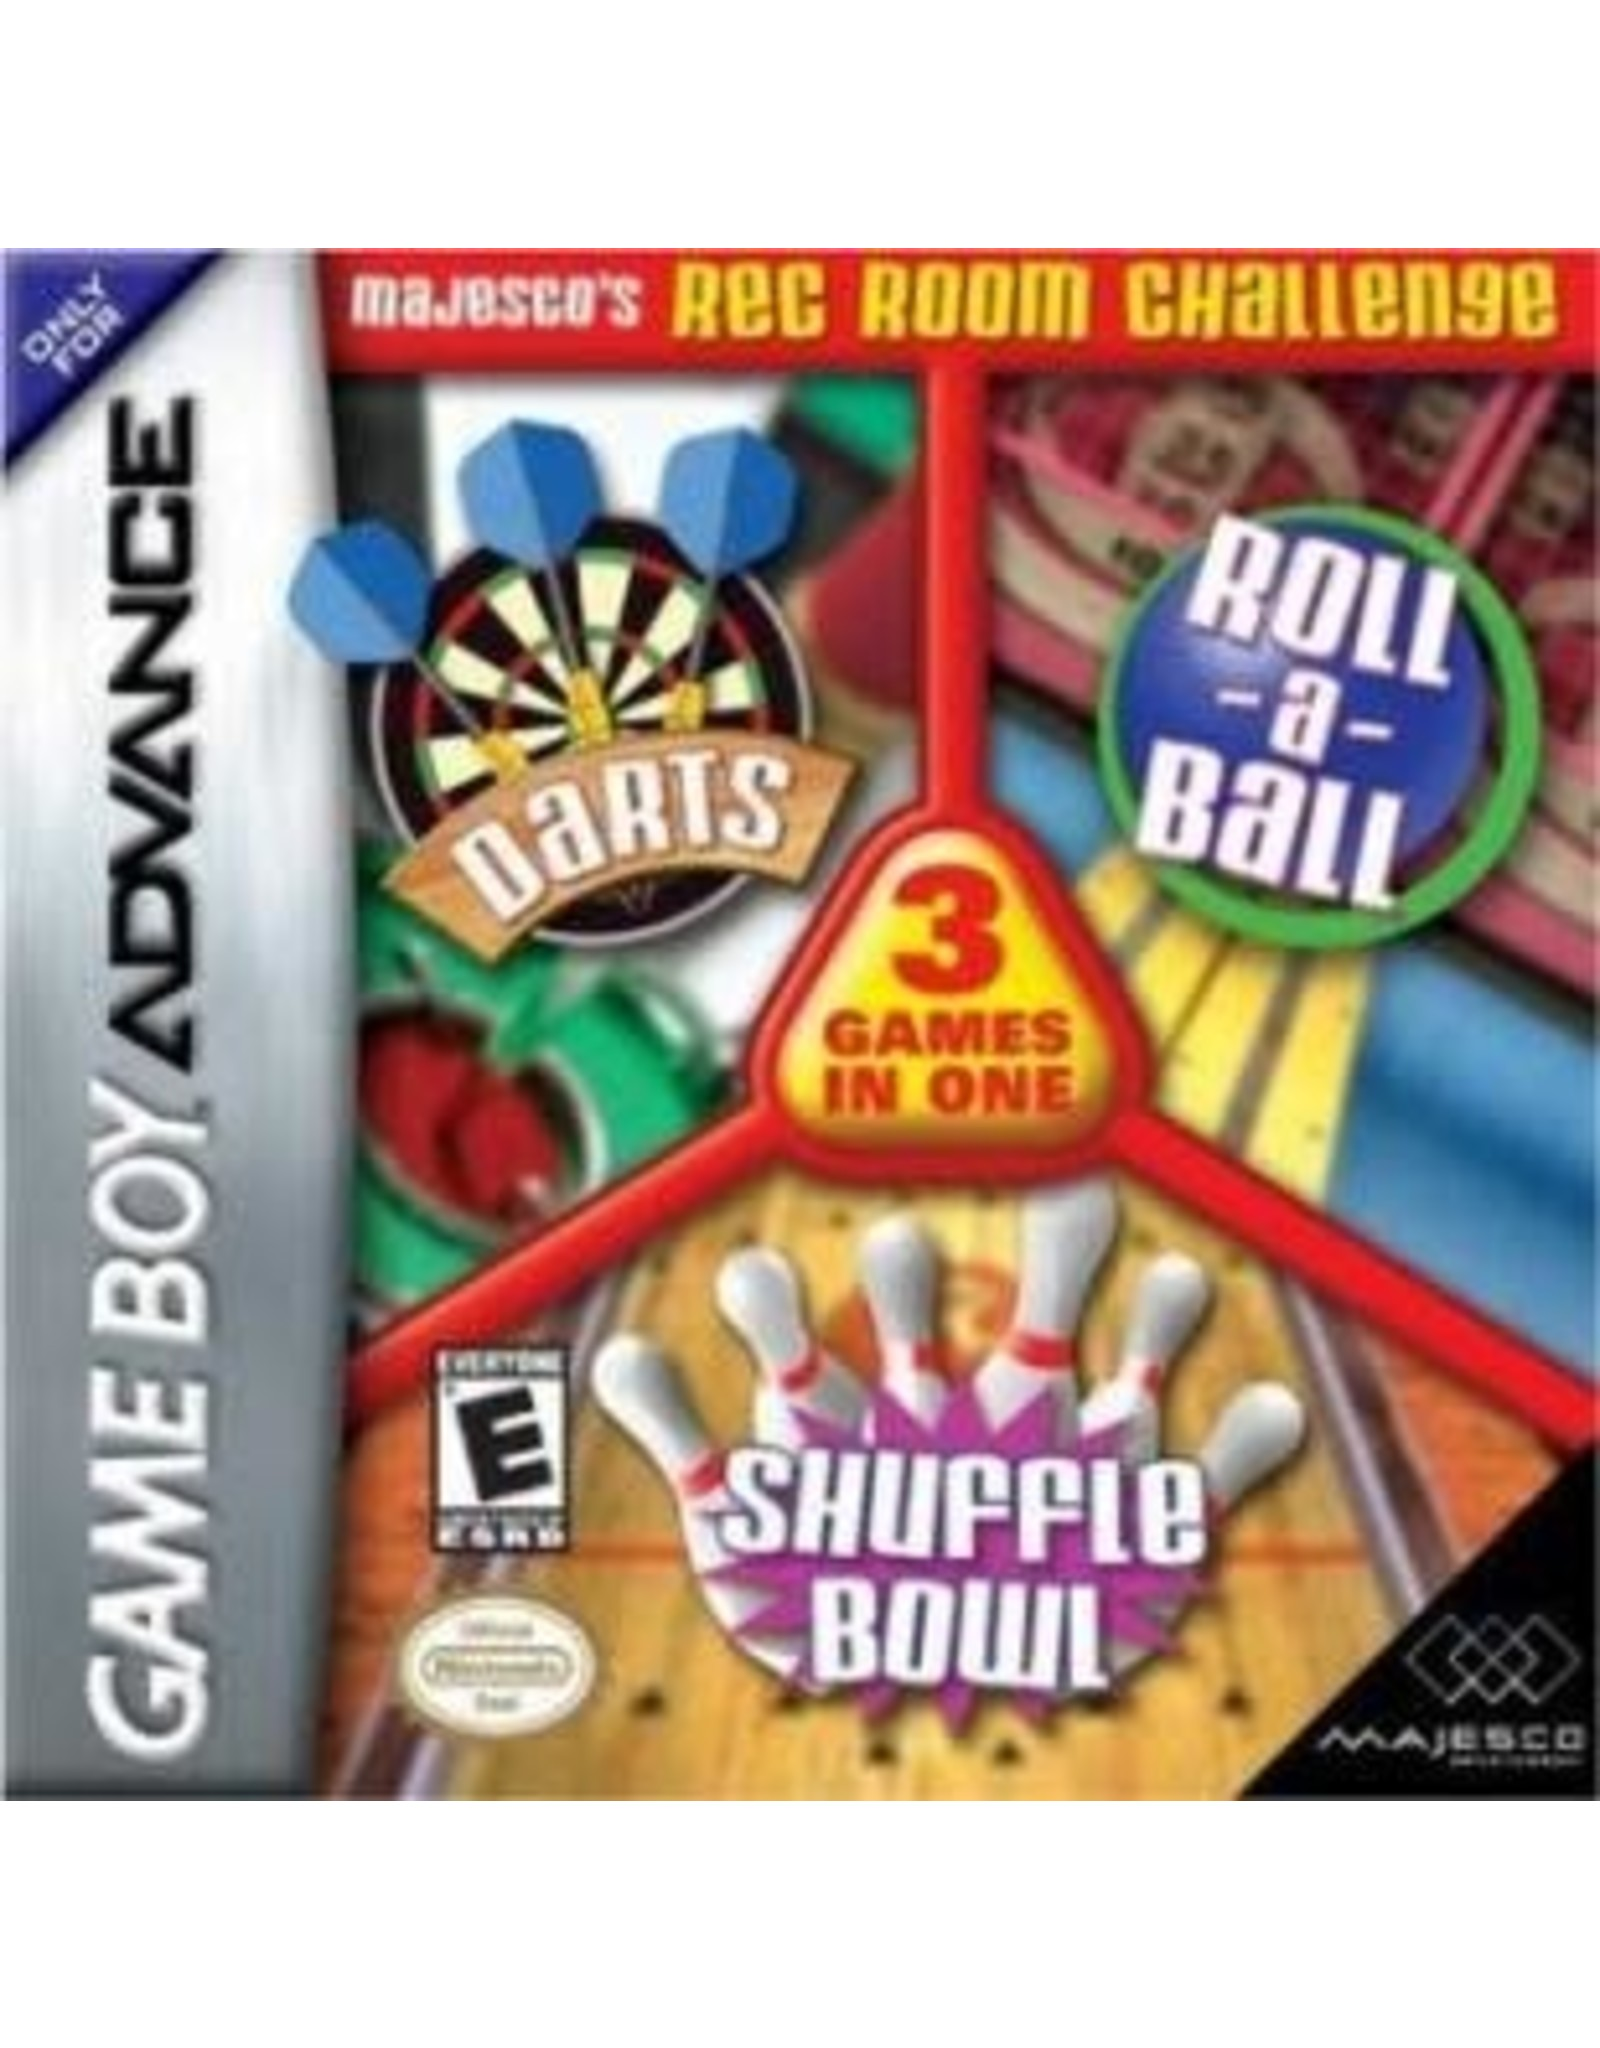 GameBoy Advance 3-in-1 Rec Room Challenge (Cart Only)